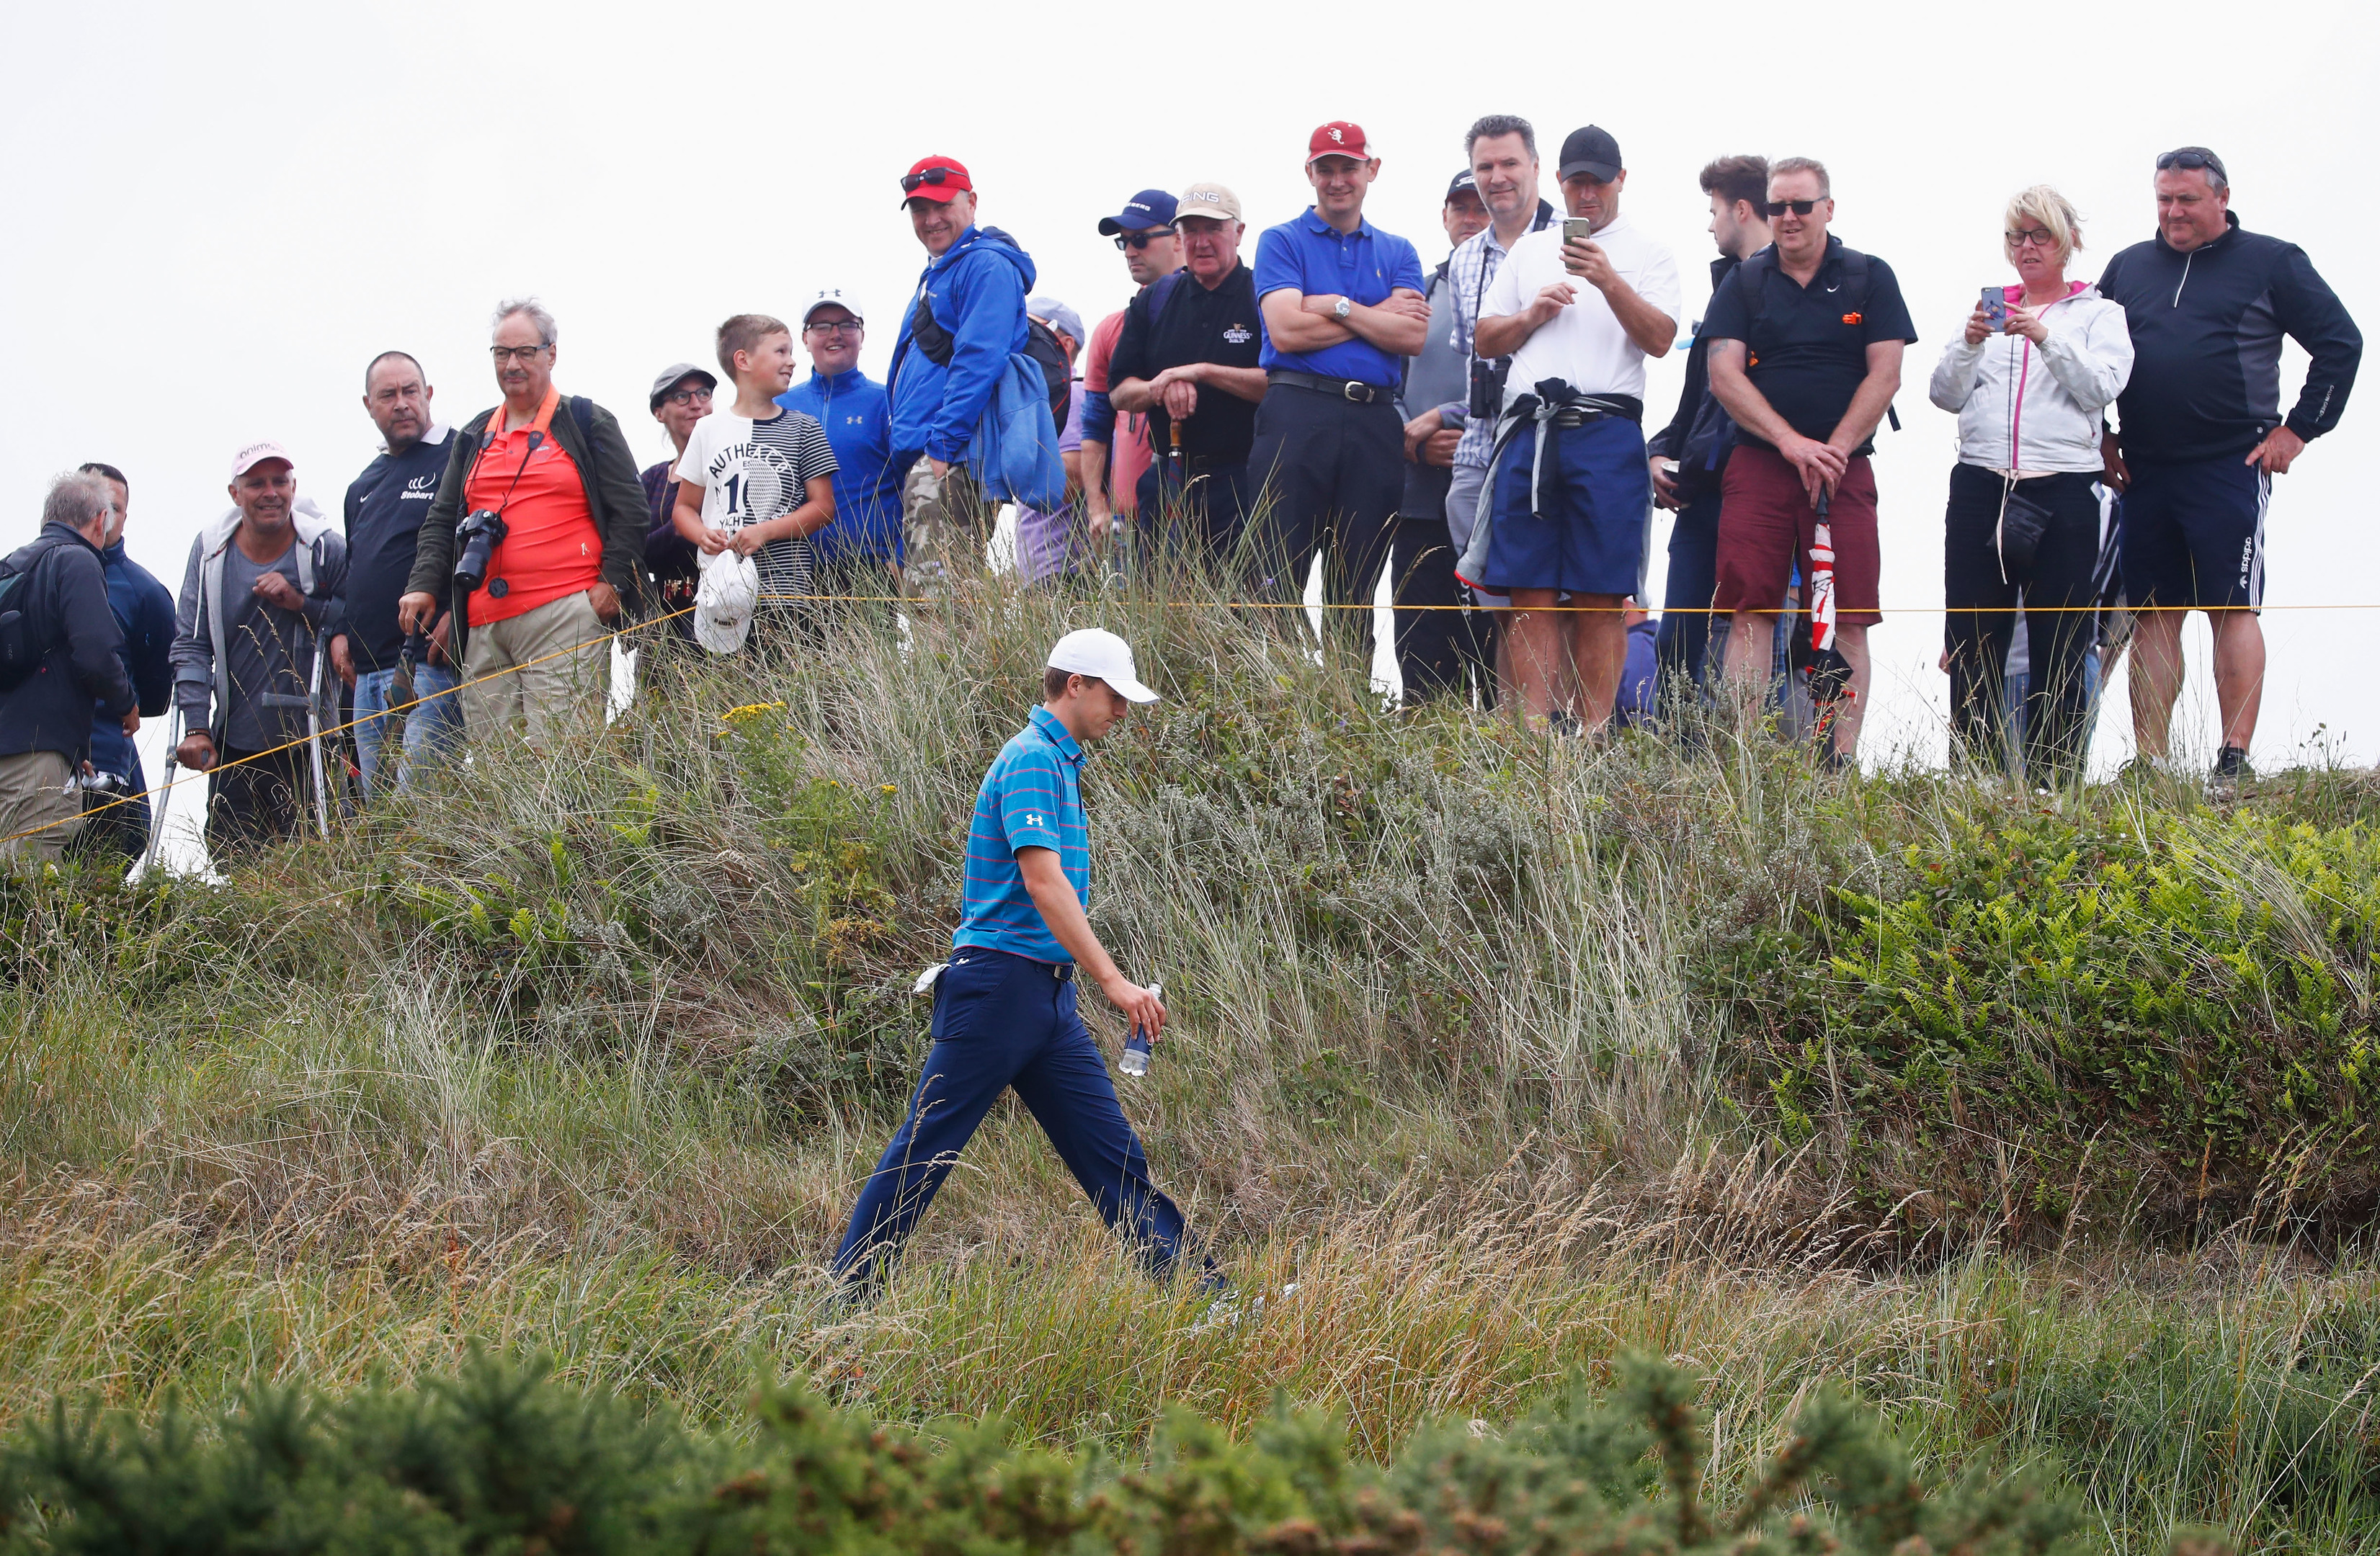 Jordan Spieth's playing profile fits Birkdale best out of the world's top players.